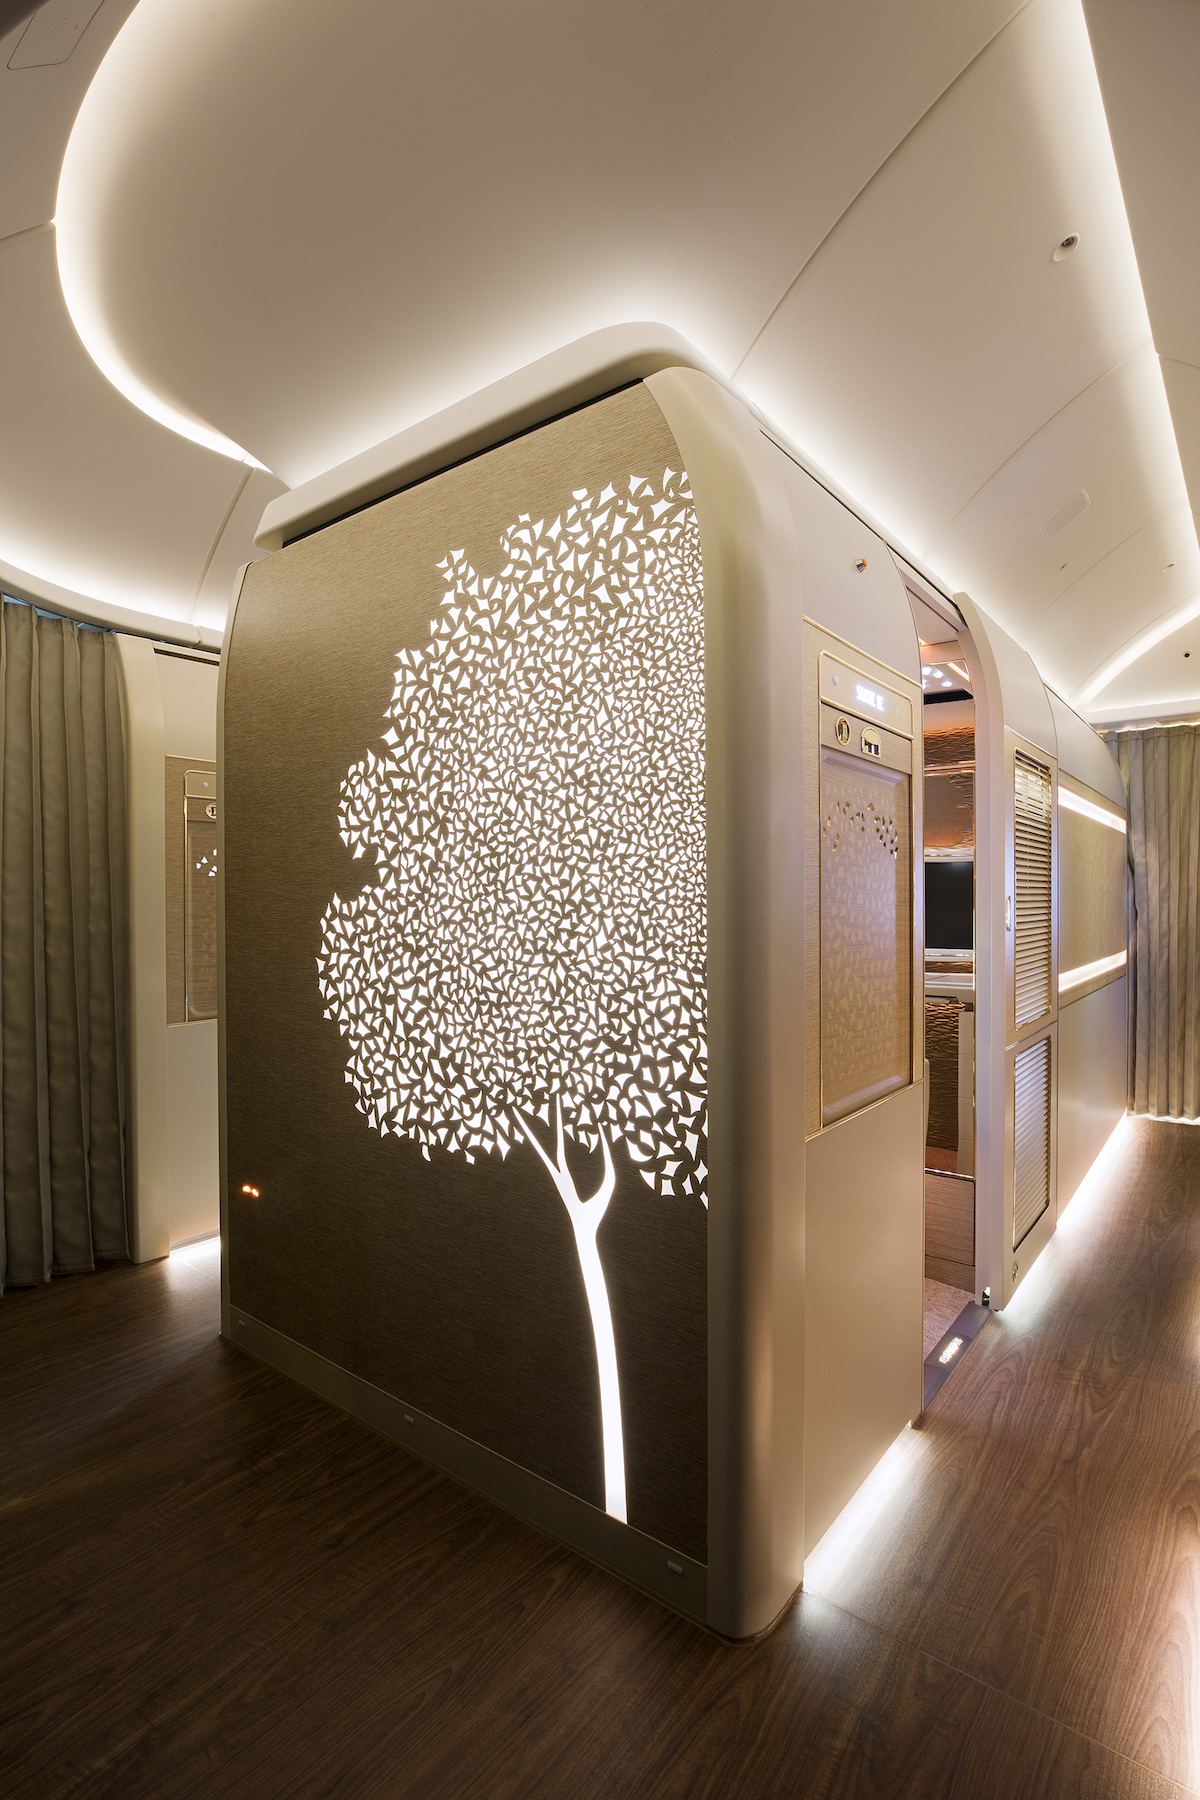 Emirates New First Class Suite: Floor to Ceiling Walls